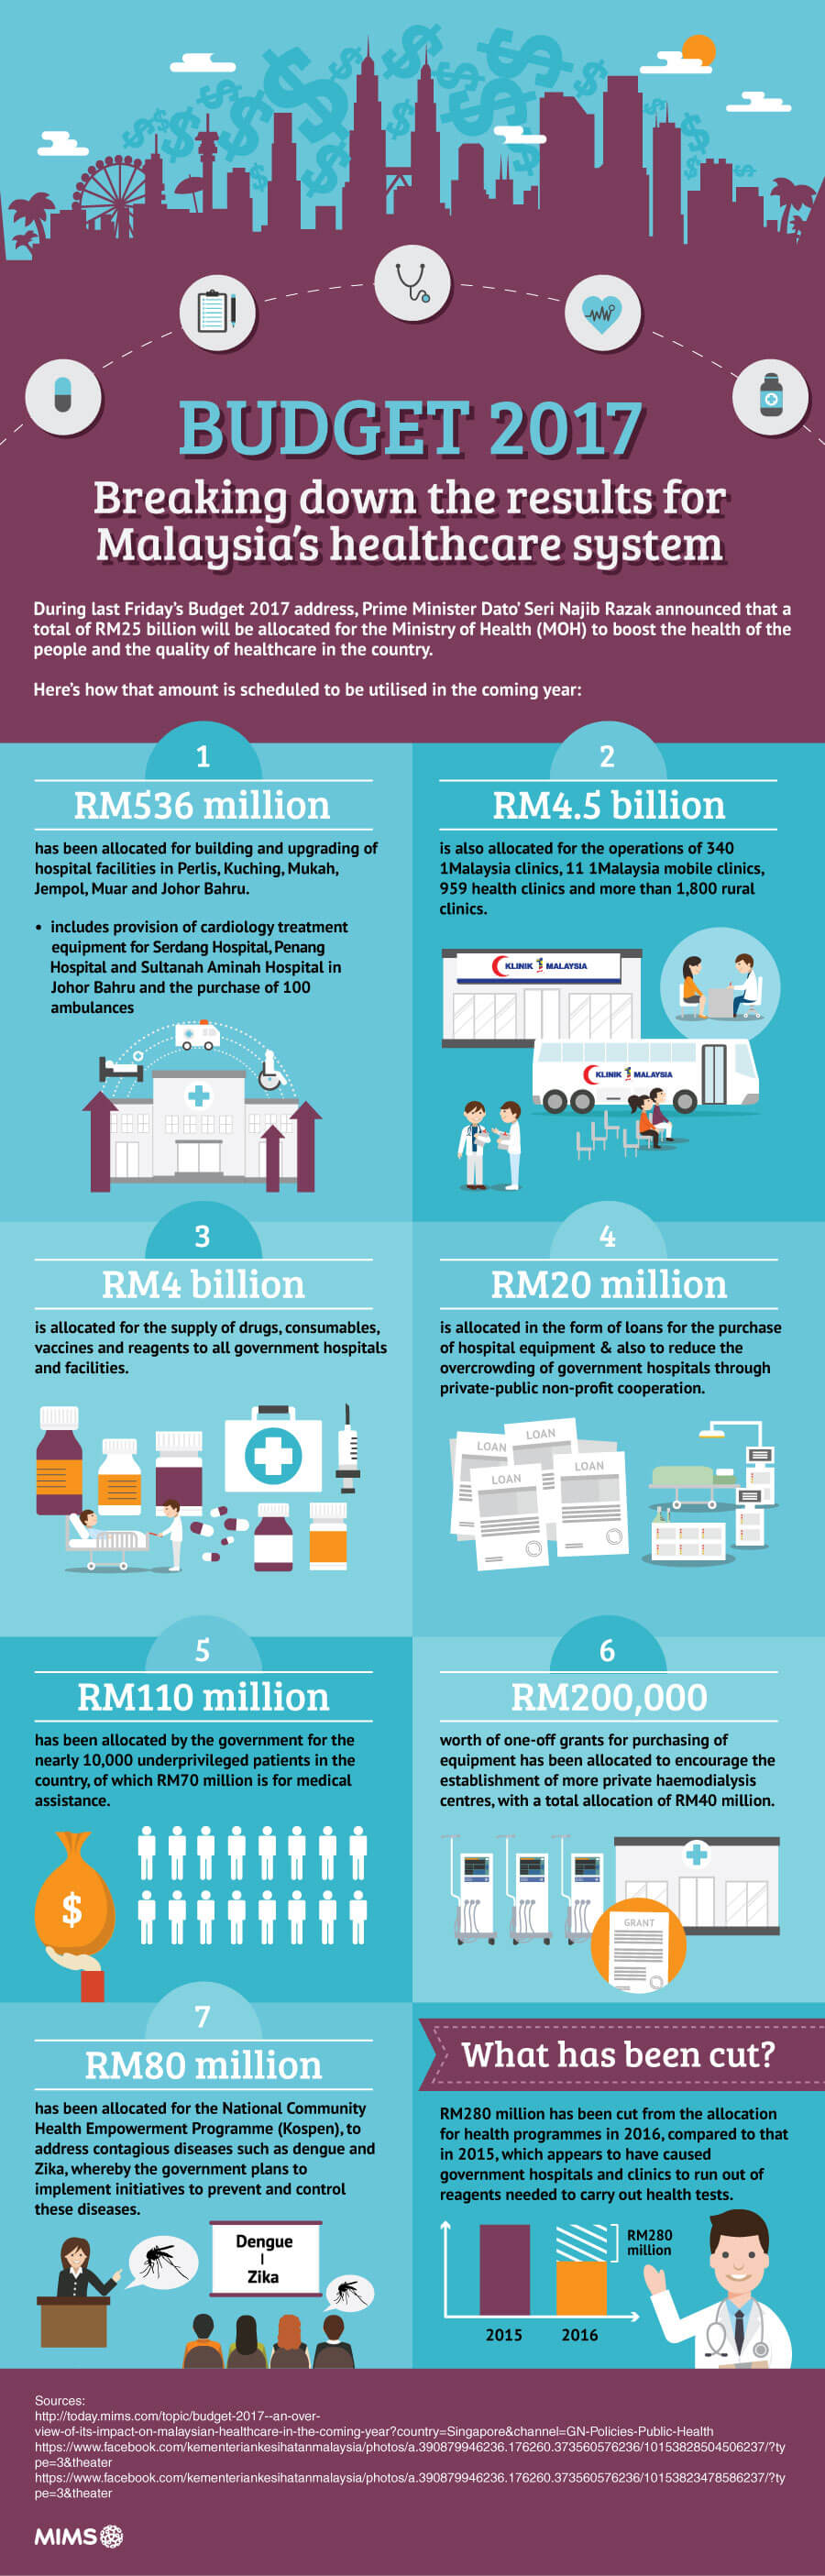 Breaking down Budget 2017 spending for Malaysia's healthcare system